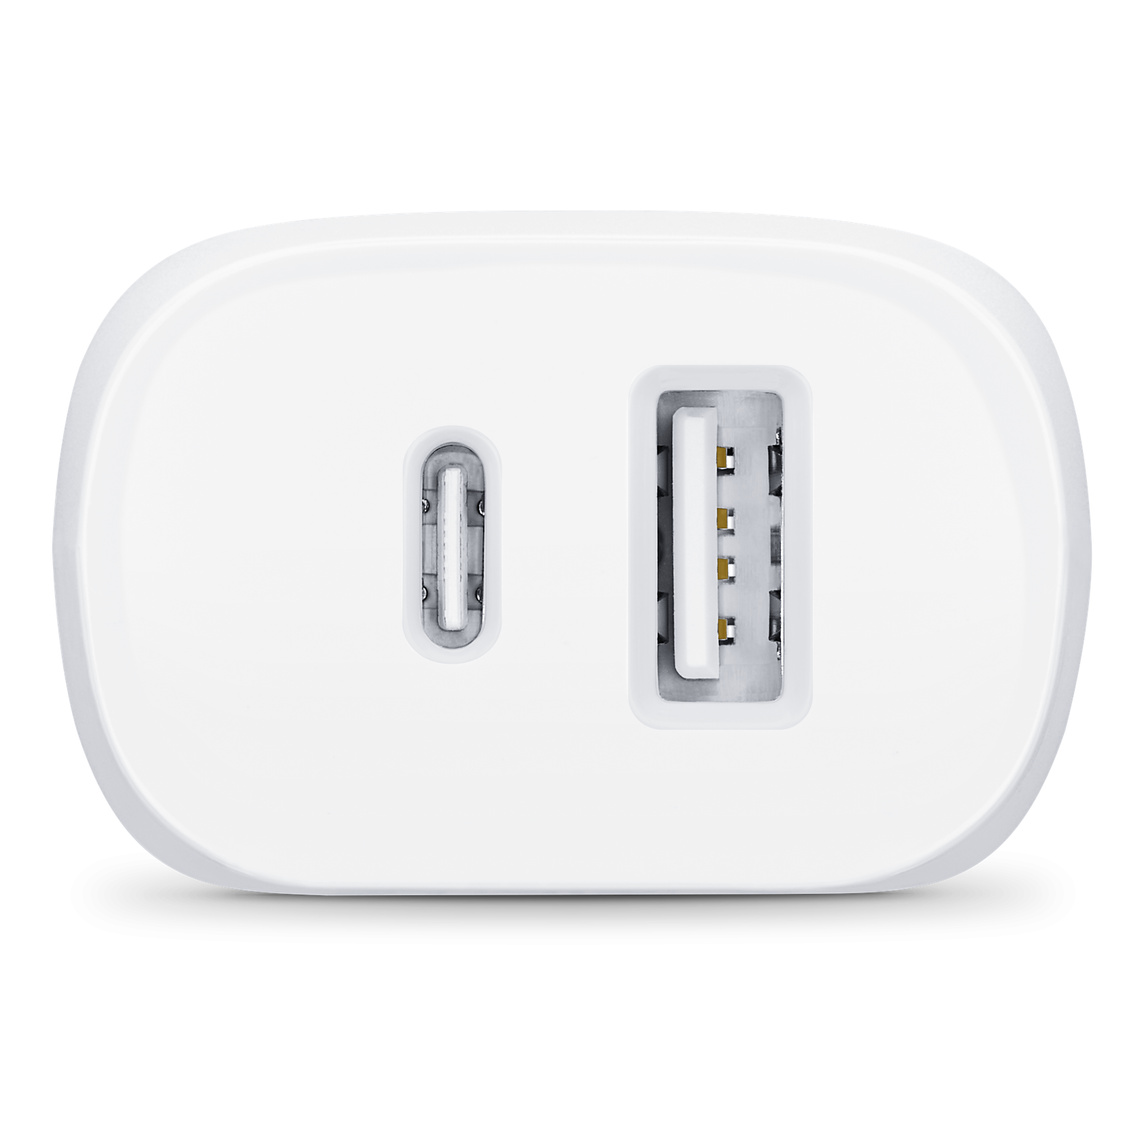 Belkin BOOST↑CHARGE 30W USB C Wall Charger + USB C Cable with Lightning Connector